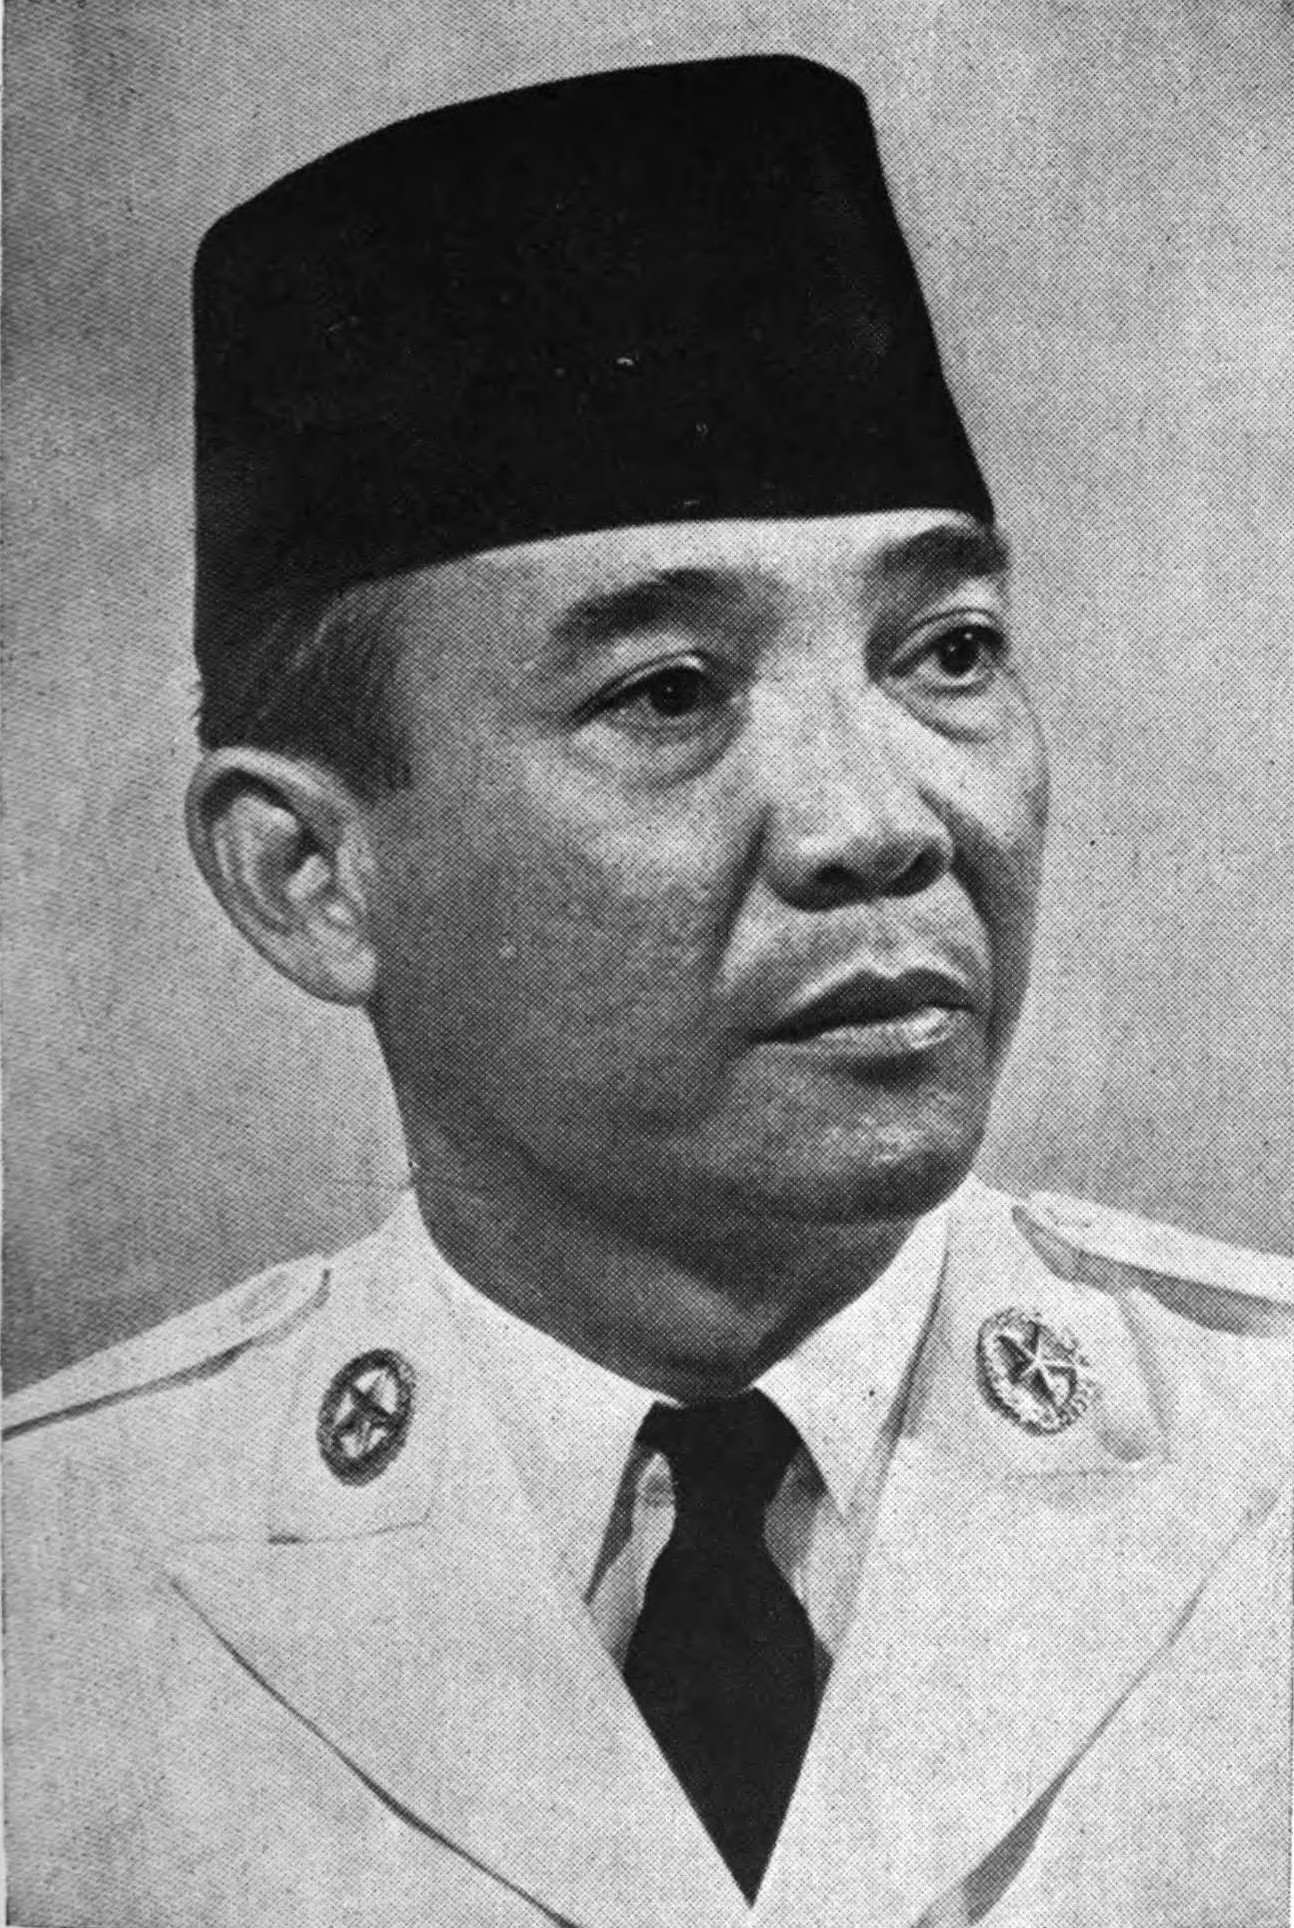 https://i2.wp.com/upload.wikimedia.org/wikipedia/commons/c/c5/Soekarno.jpg